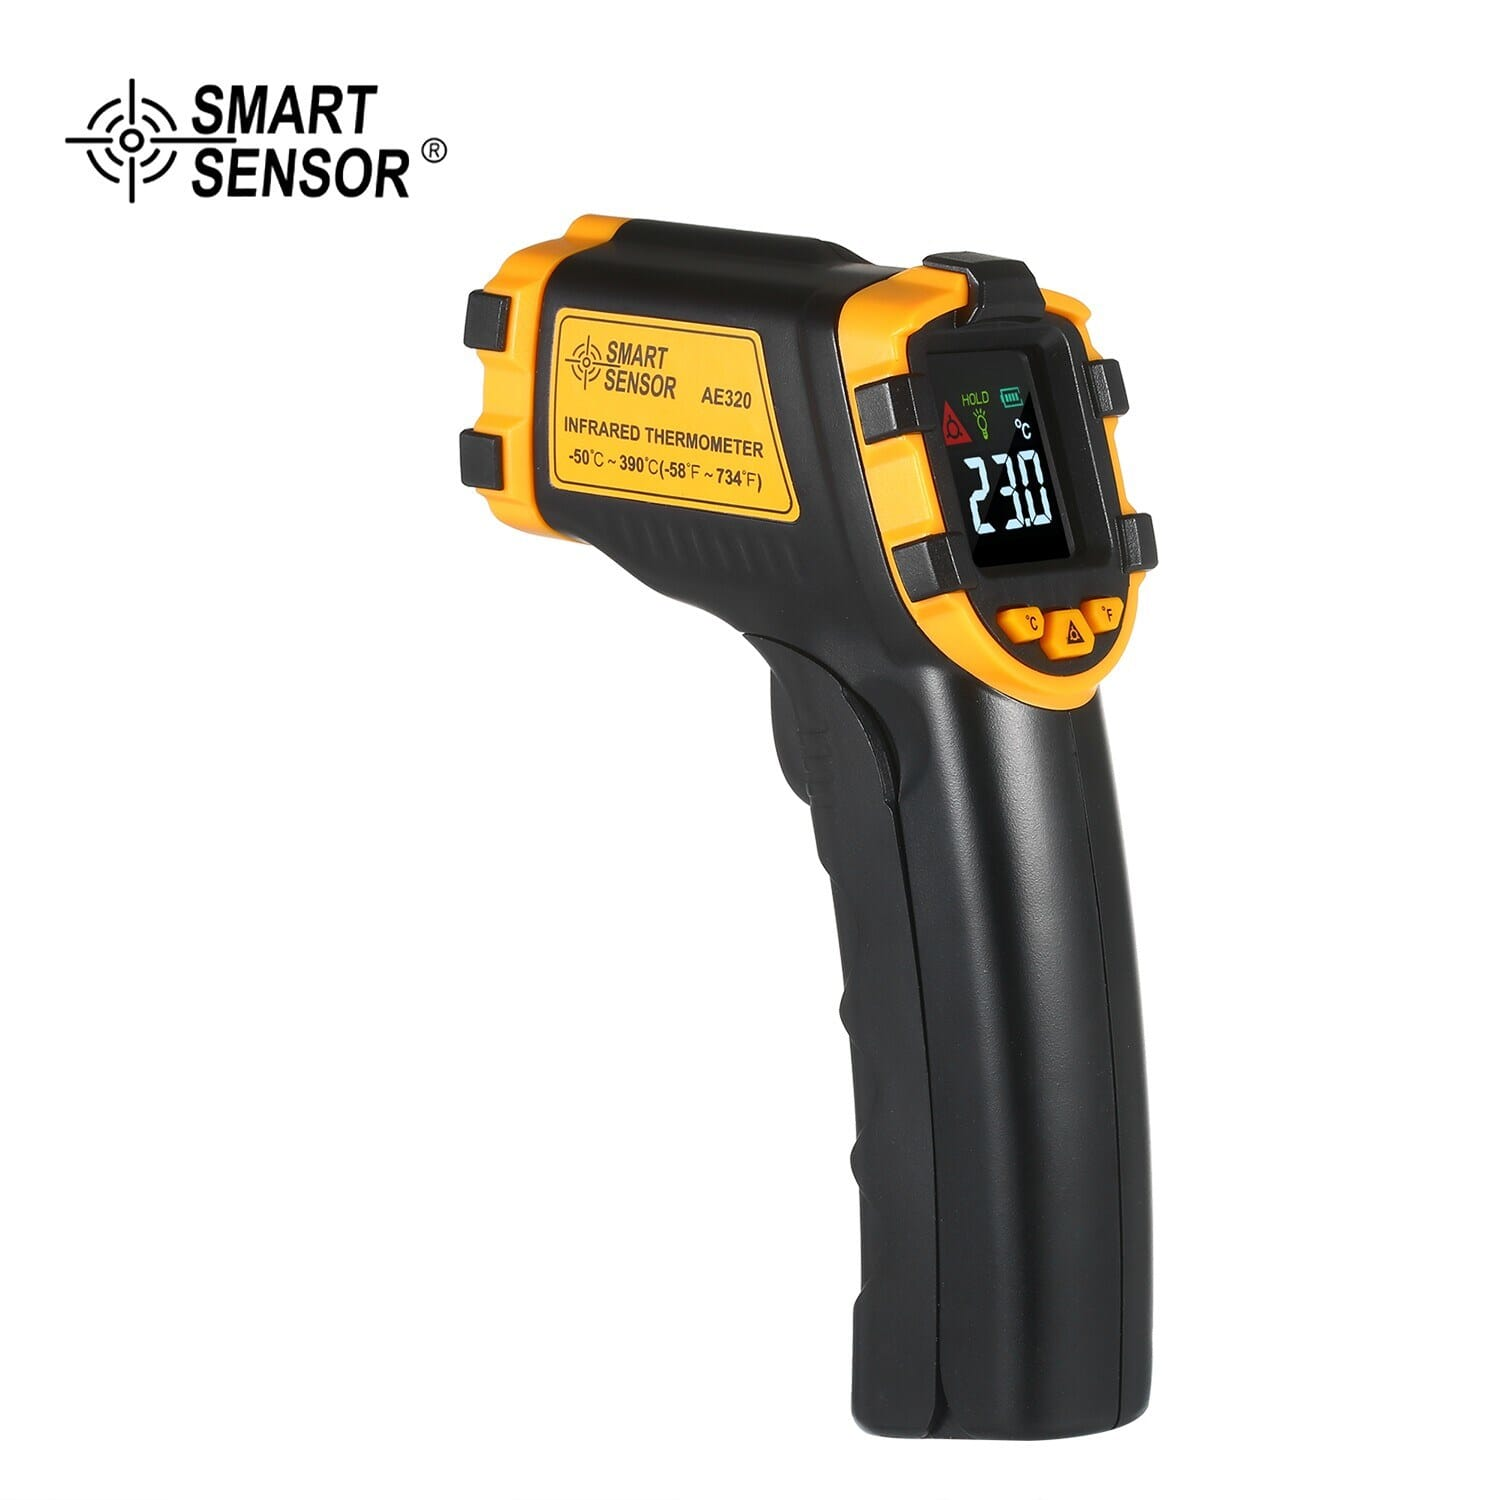 46% OFF SMART SENSOR -50¡«390¡æ 12:1 Mini Handheld Digital Non-contact IR Infrared Thermometer,free shipping+$16.49